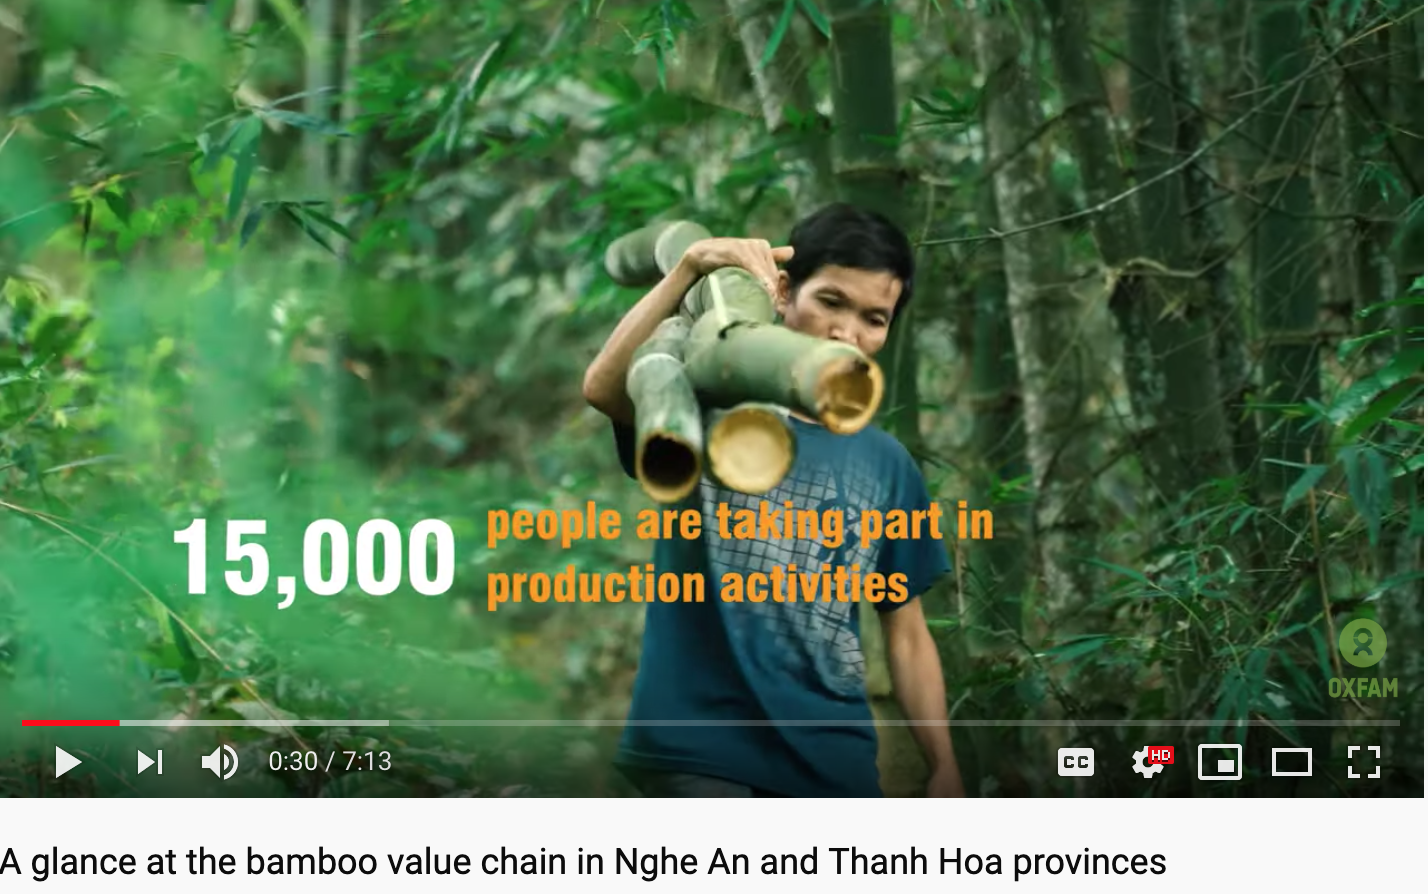 Oxfam video: A glance at the bamboo value chain in Nghe An and Thanh Hoa provinces